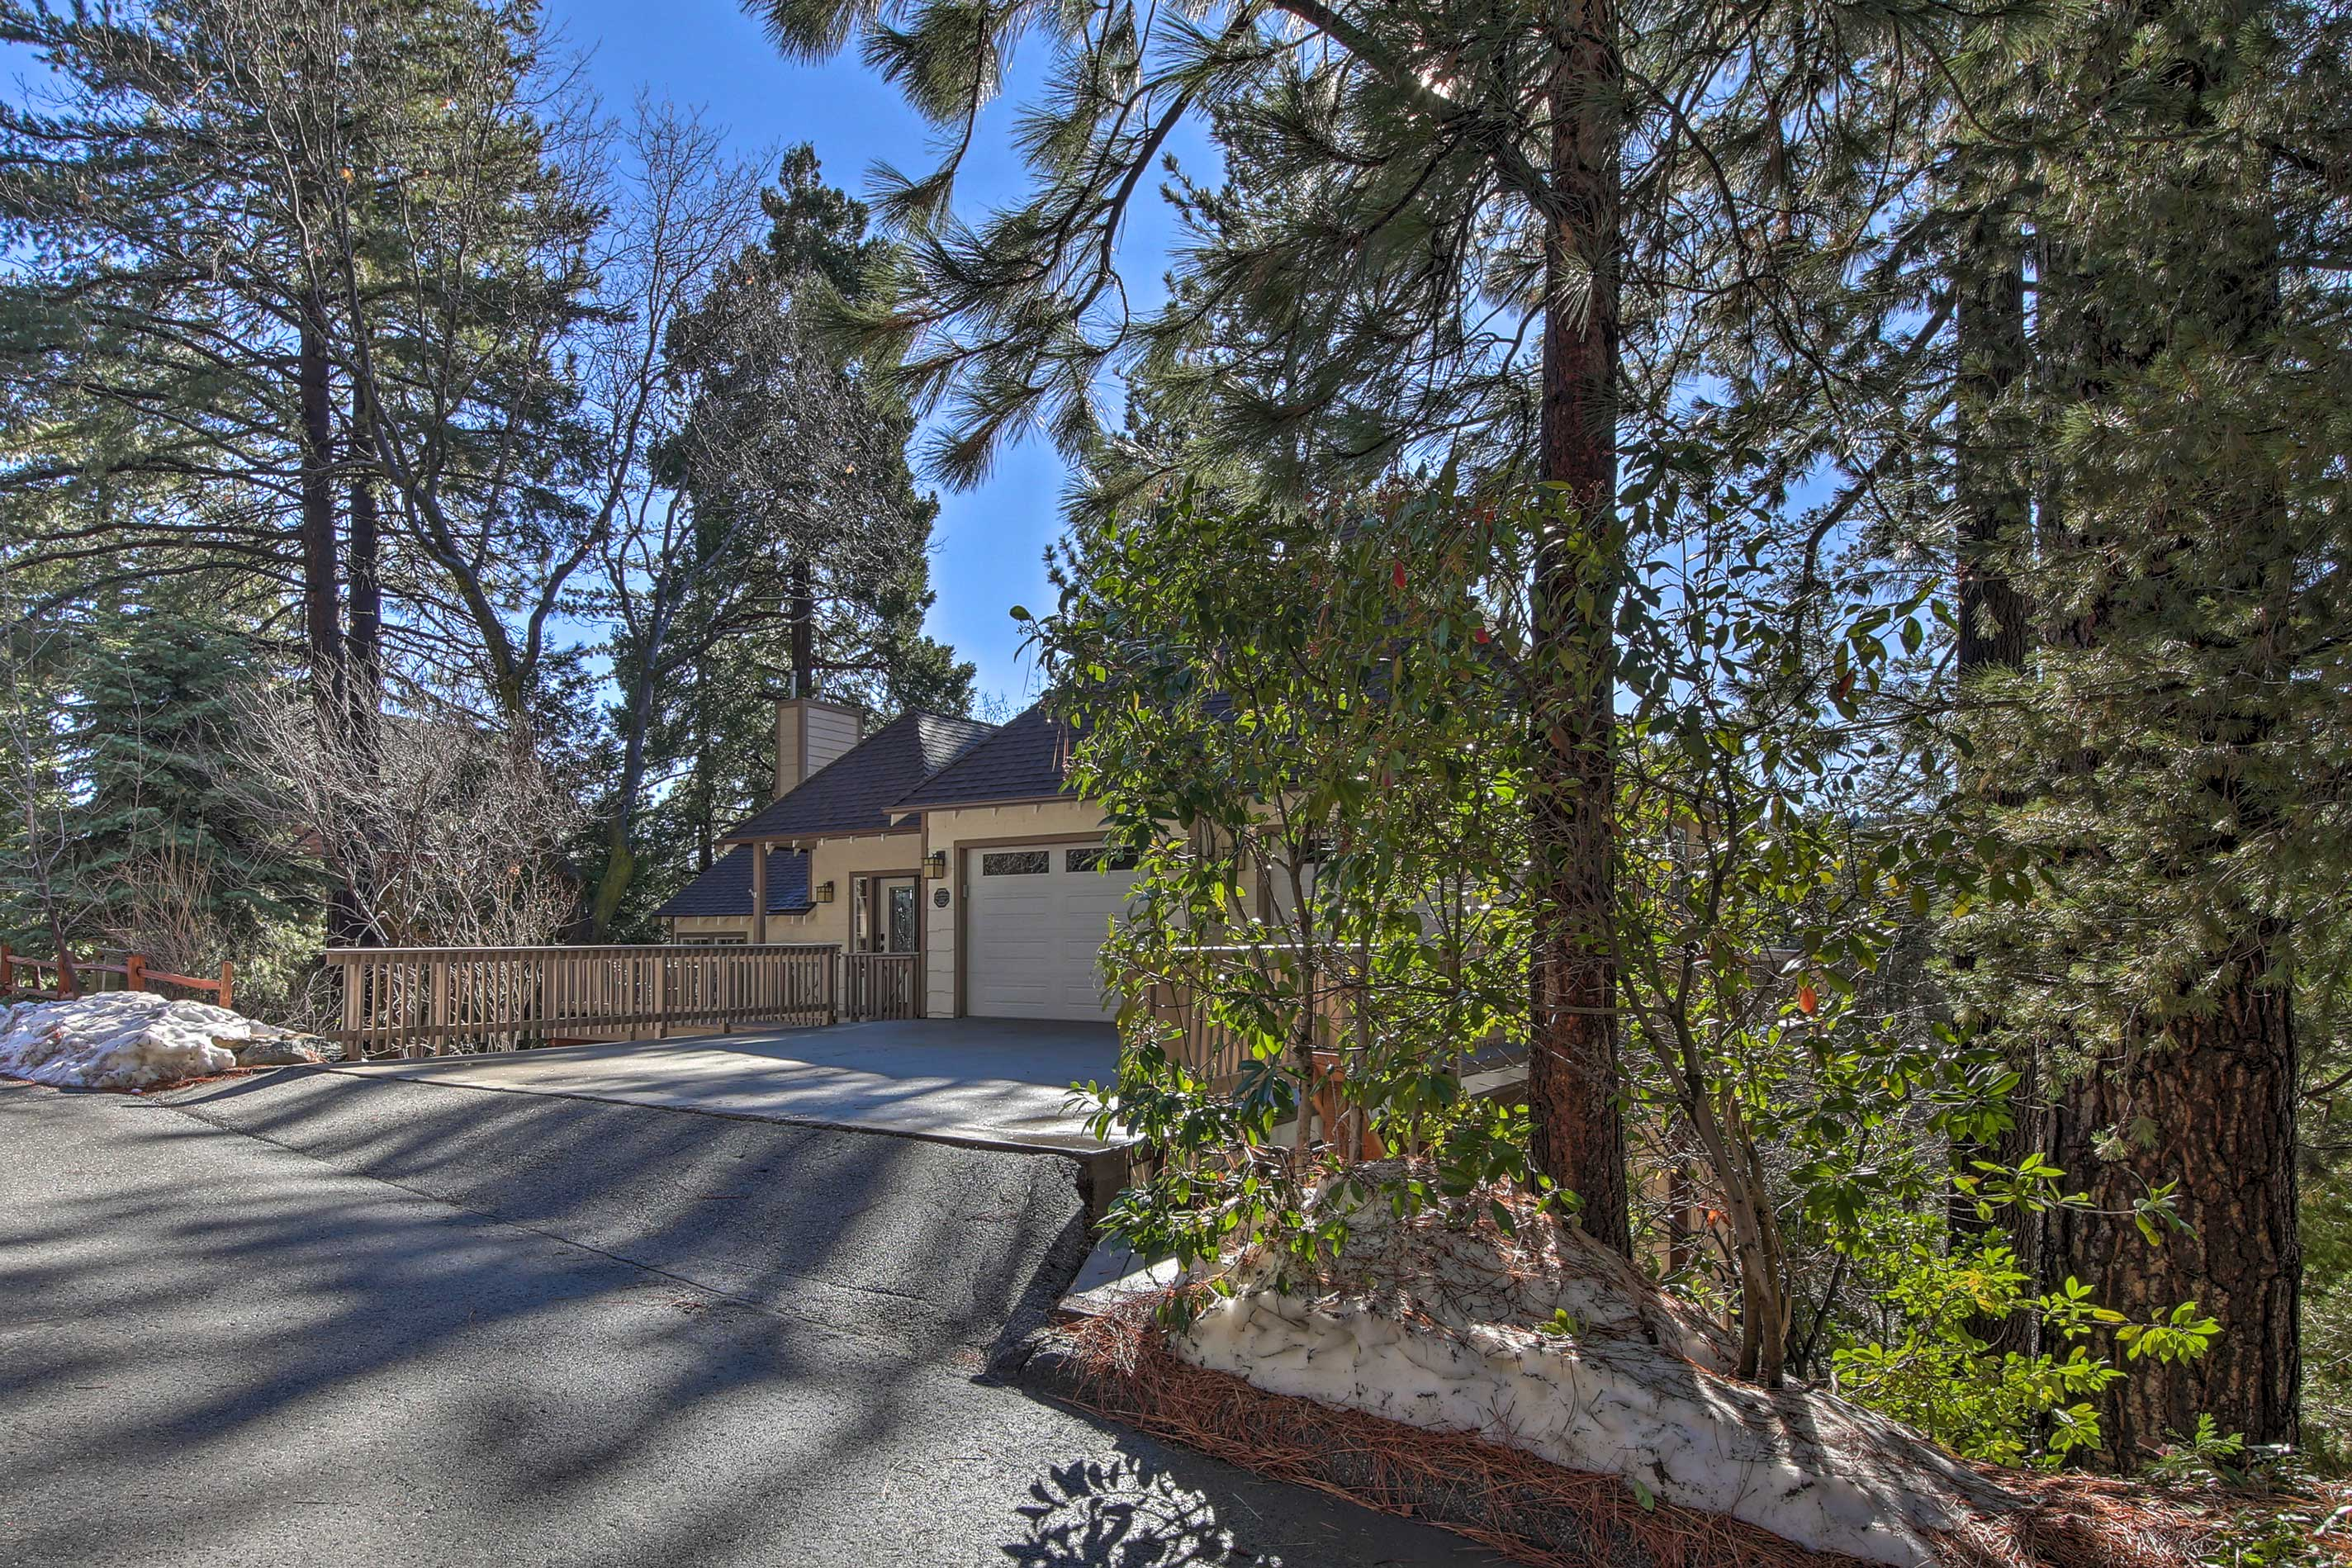 Don't miss out on an effortless California adventure and book this home now!